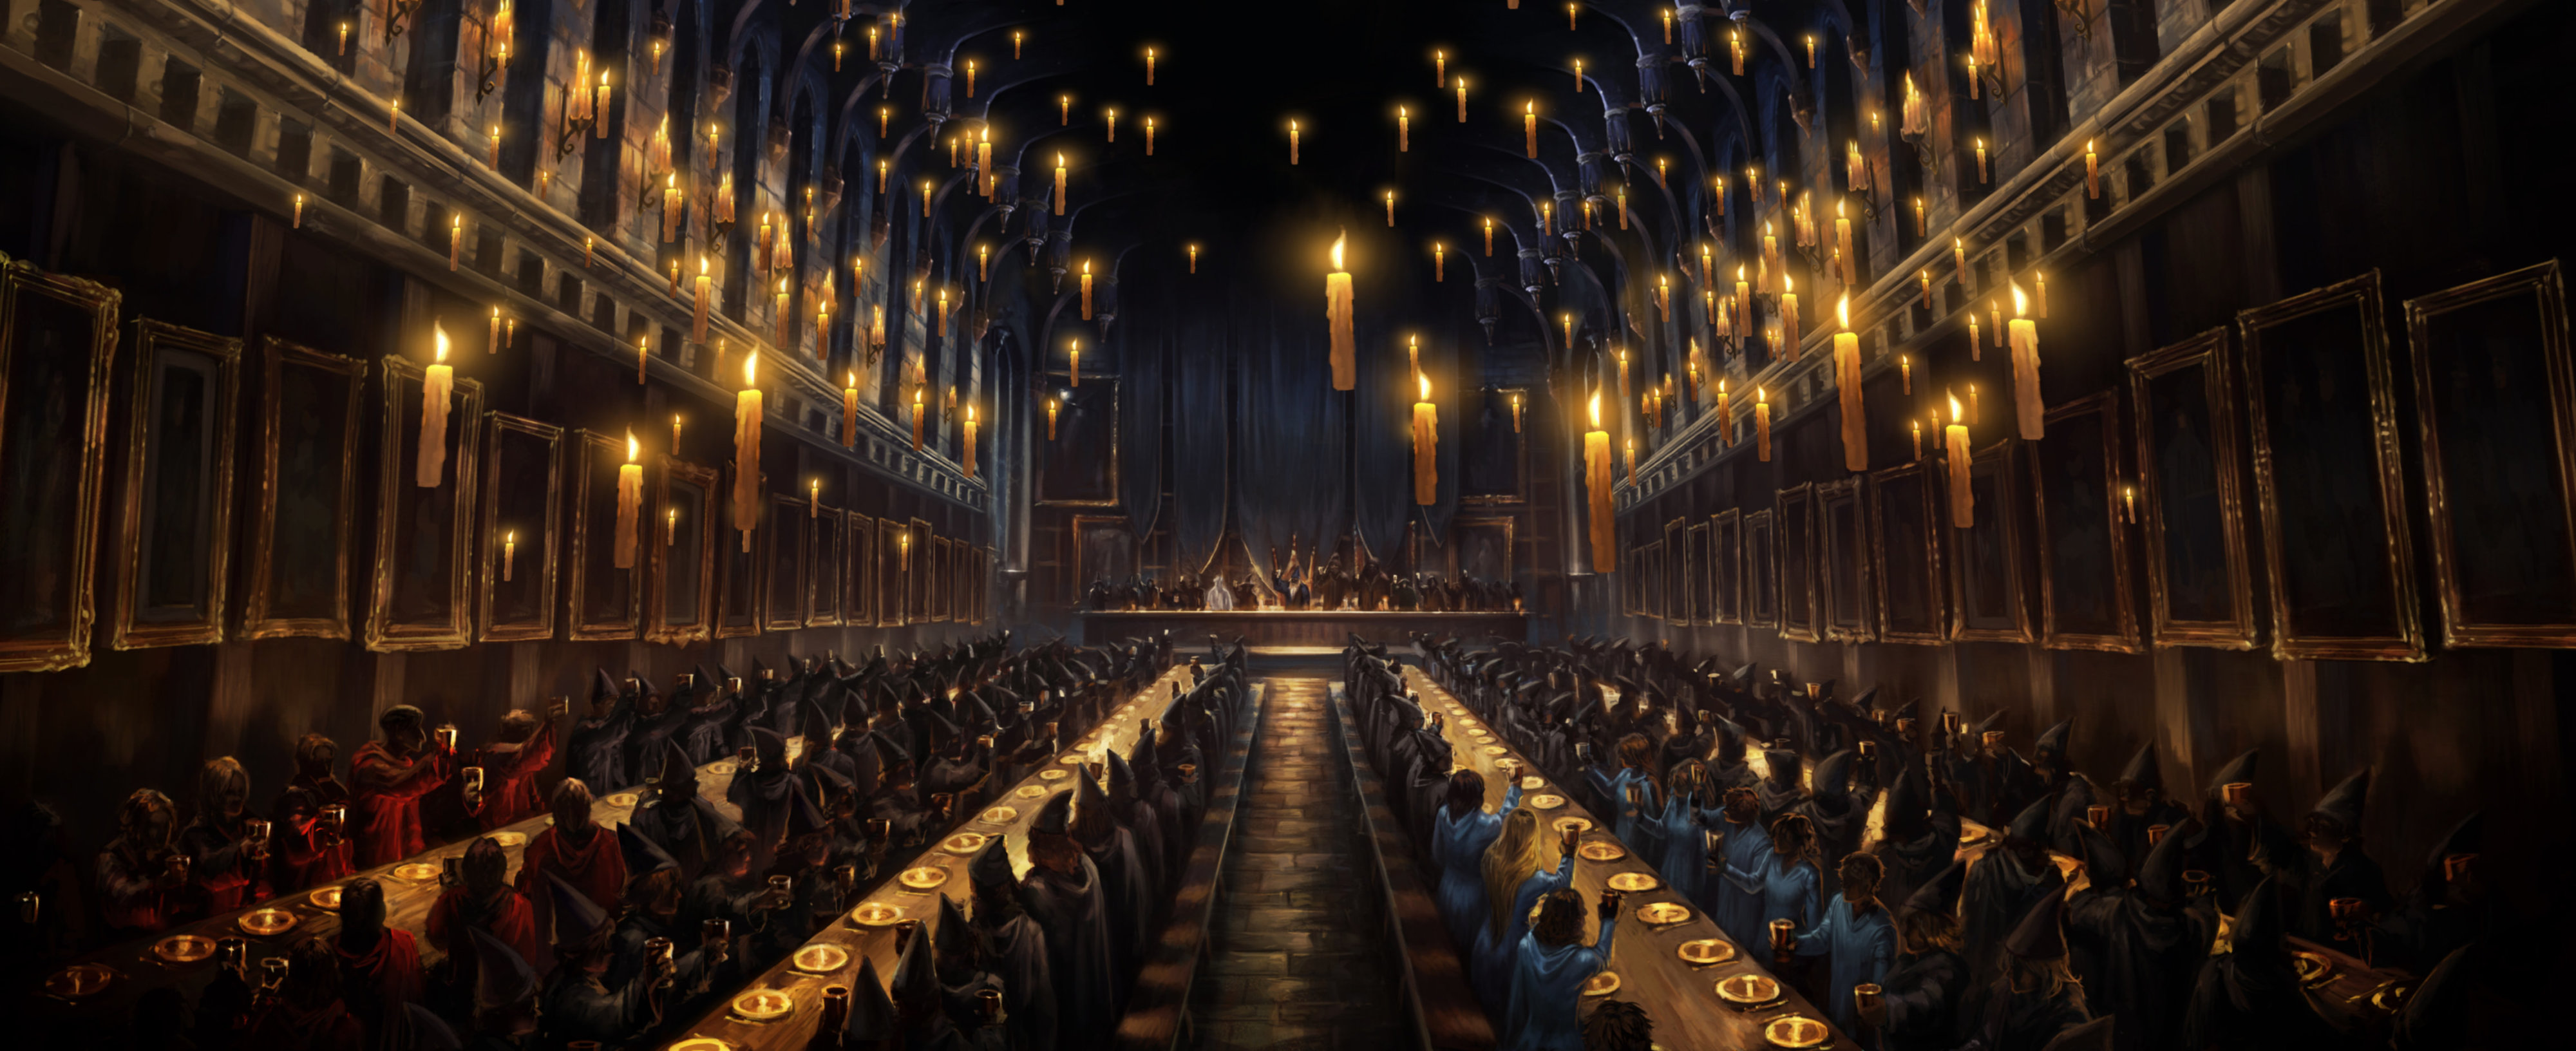 Good Wallpaper Harry Potter Concept Art - c9acd7c300acd6eee6fb9f4ad6d0e971  You Should Have_279434.png